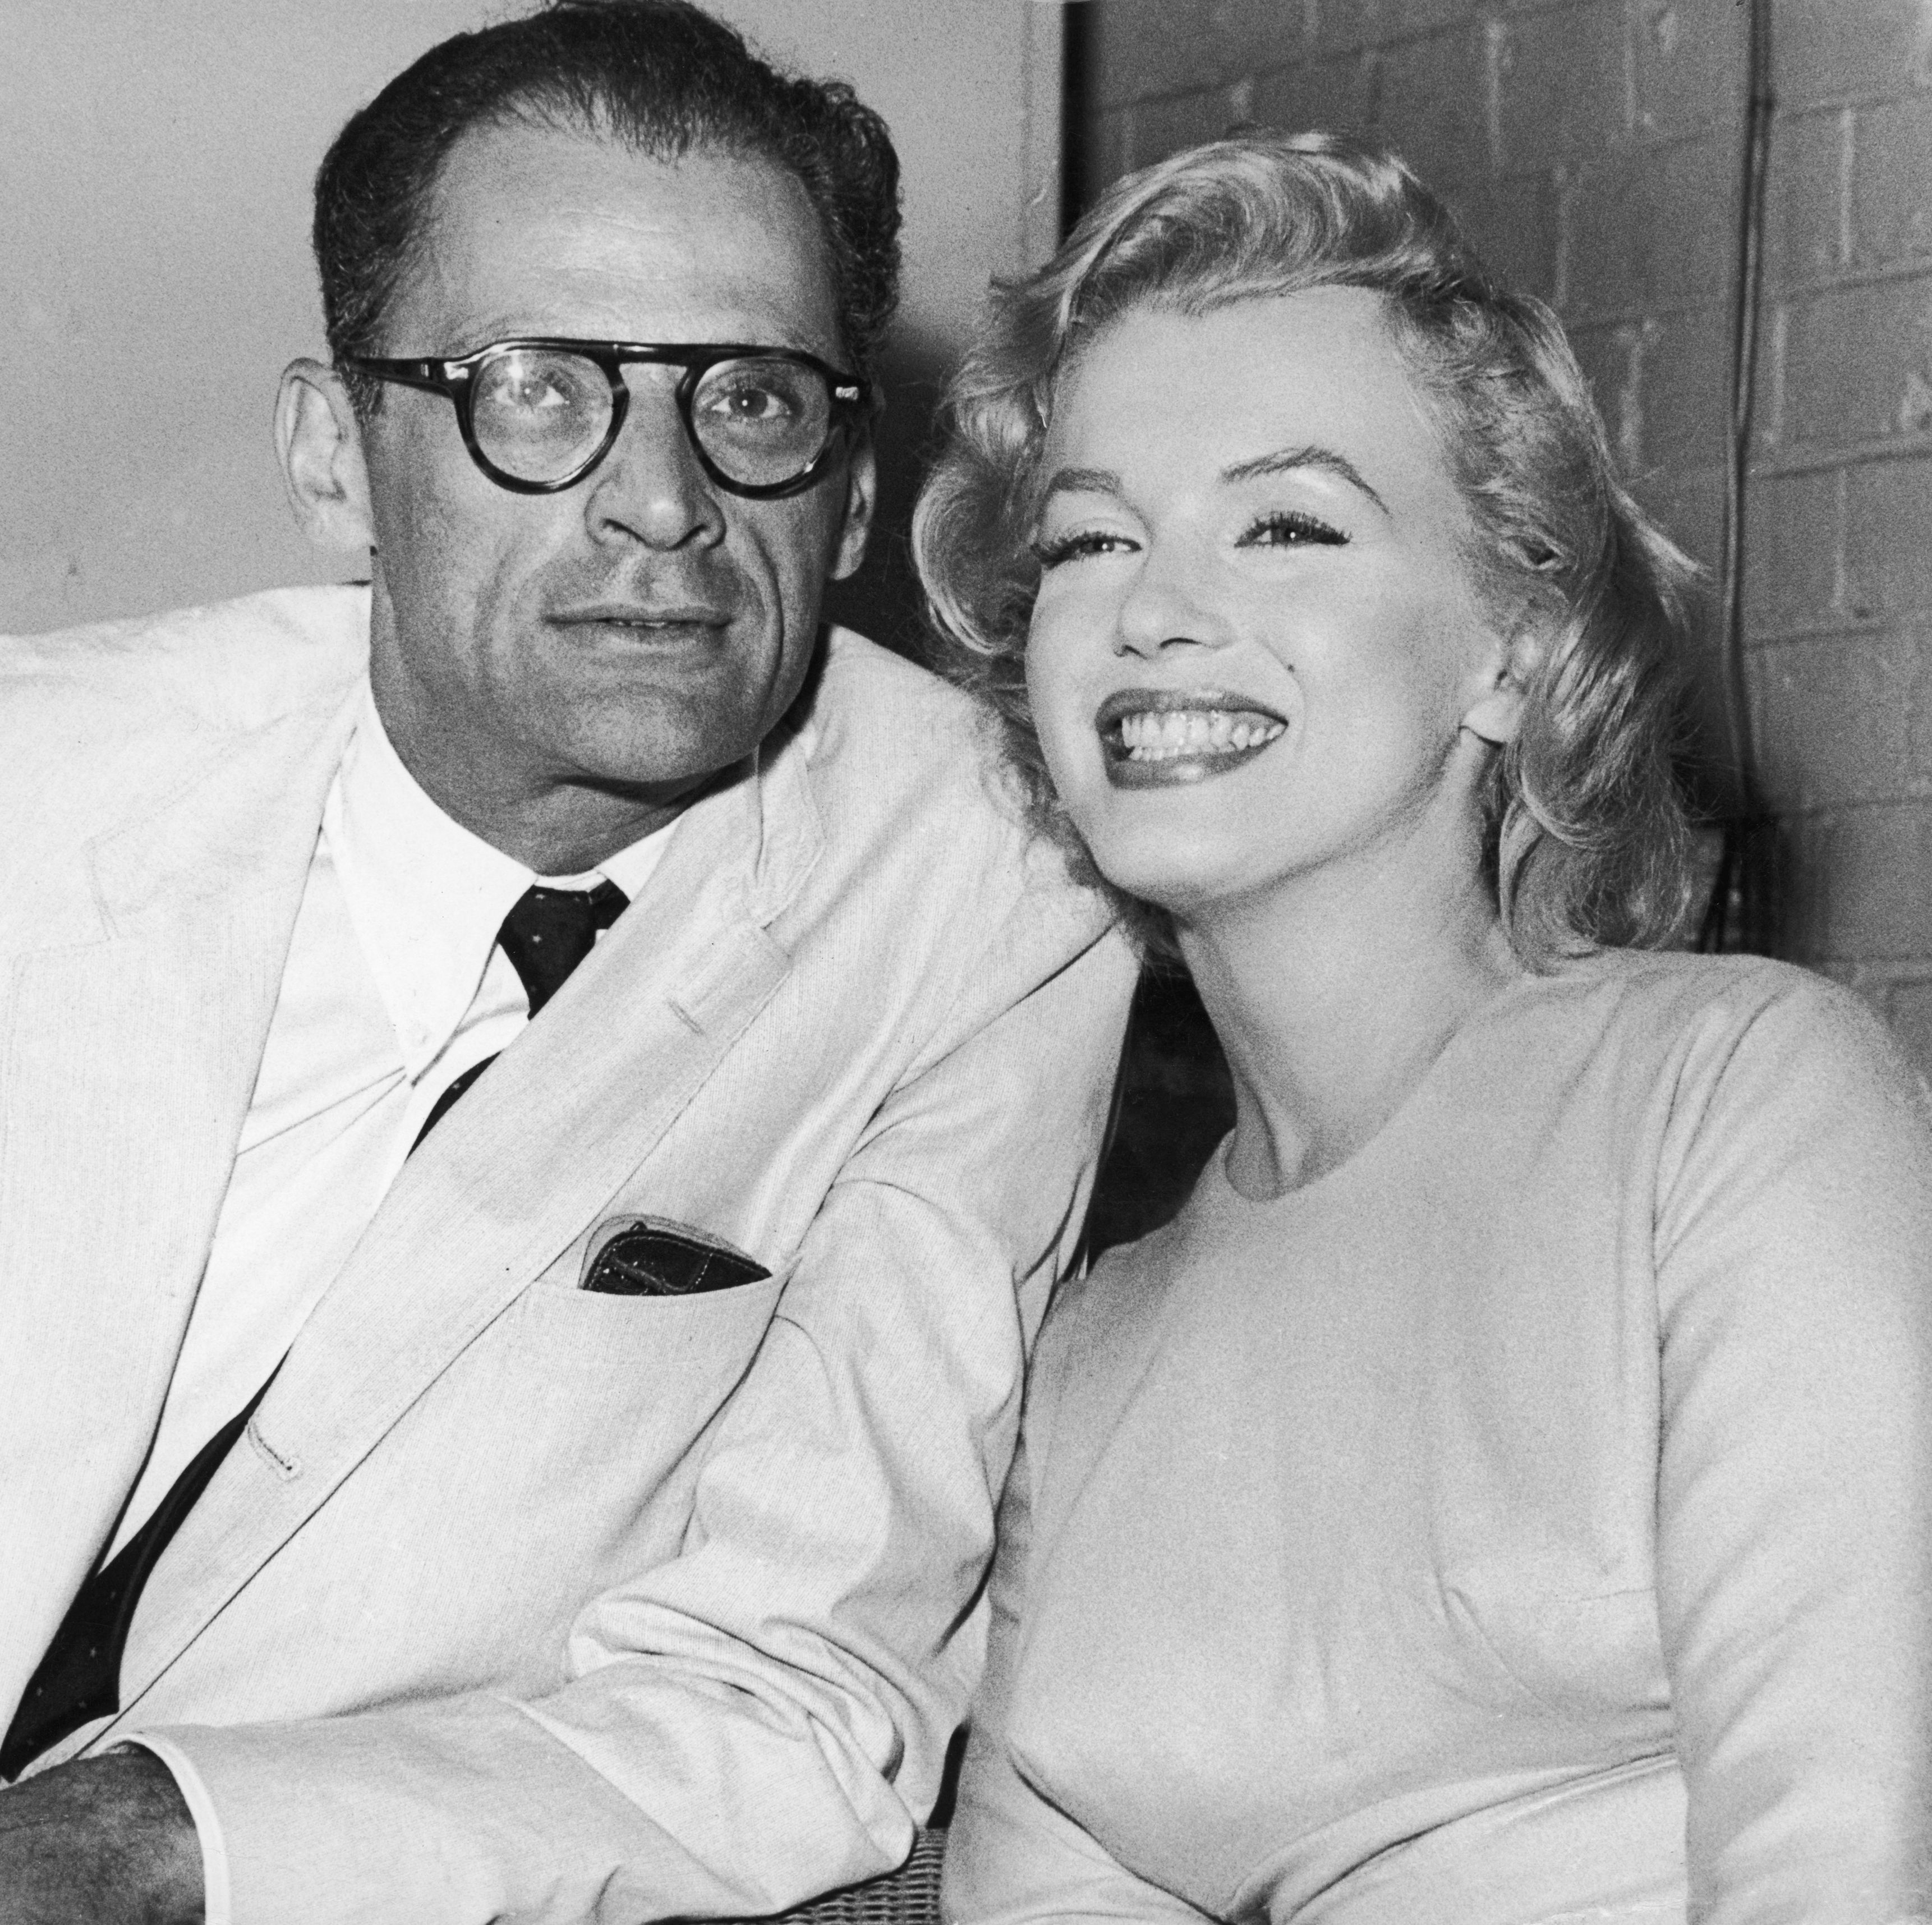 Arthur Miller and Marilyn Monroe The playwright and iconic actress married in 1956 (it was her third marriage and his second), but it didn't last long. Marilyn converted to Judaism for Arthur and stepped out of the spotlight for a while, but their marriage fell apart while they were filming The Misfits, which he wrote and she starred in .